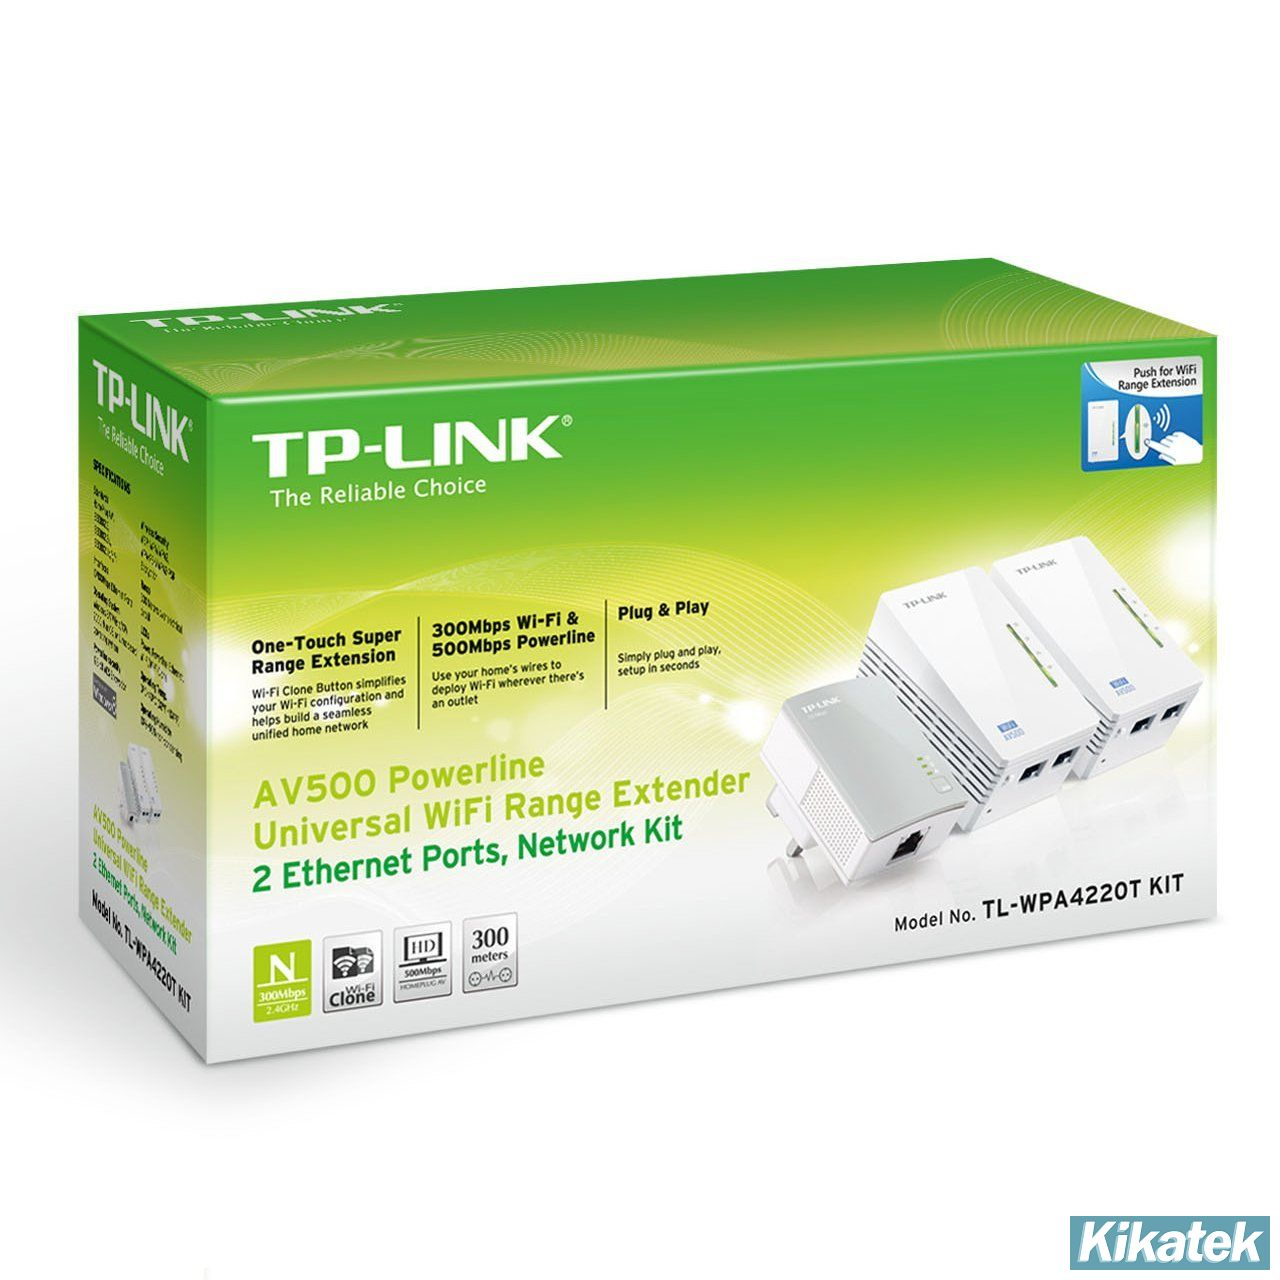 tp link av500 300mbps powerline universal wifi range extender with 2 ethernet po. Black Bedroom Furniture Sets. Home Design Ideas